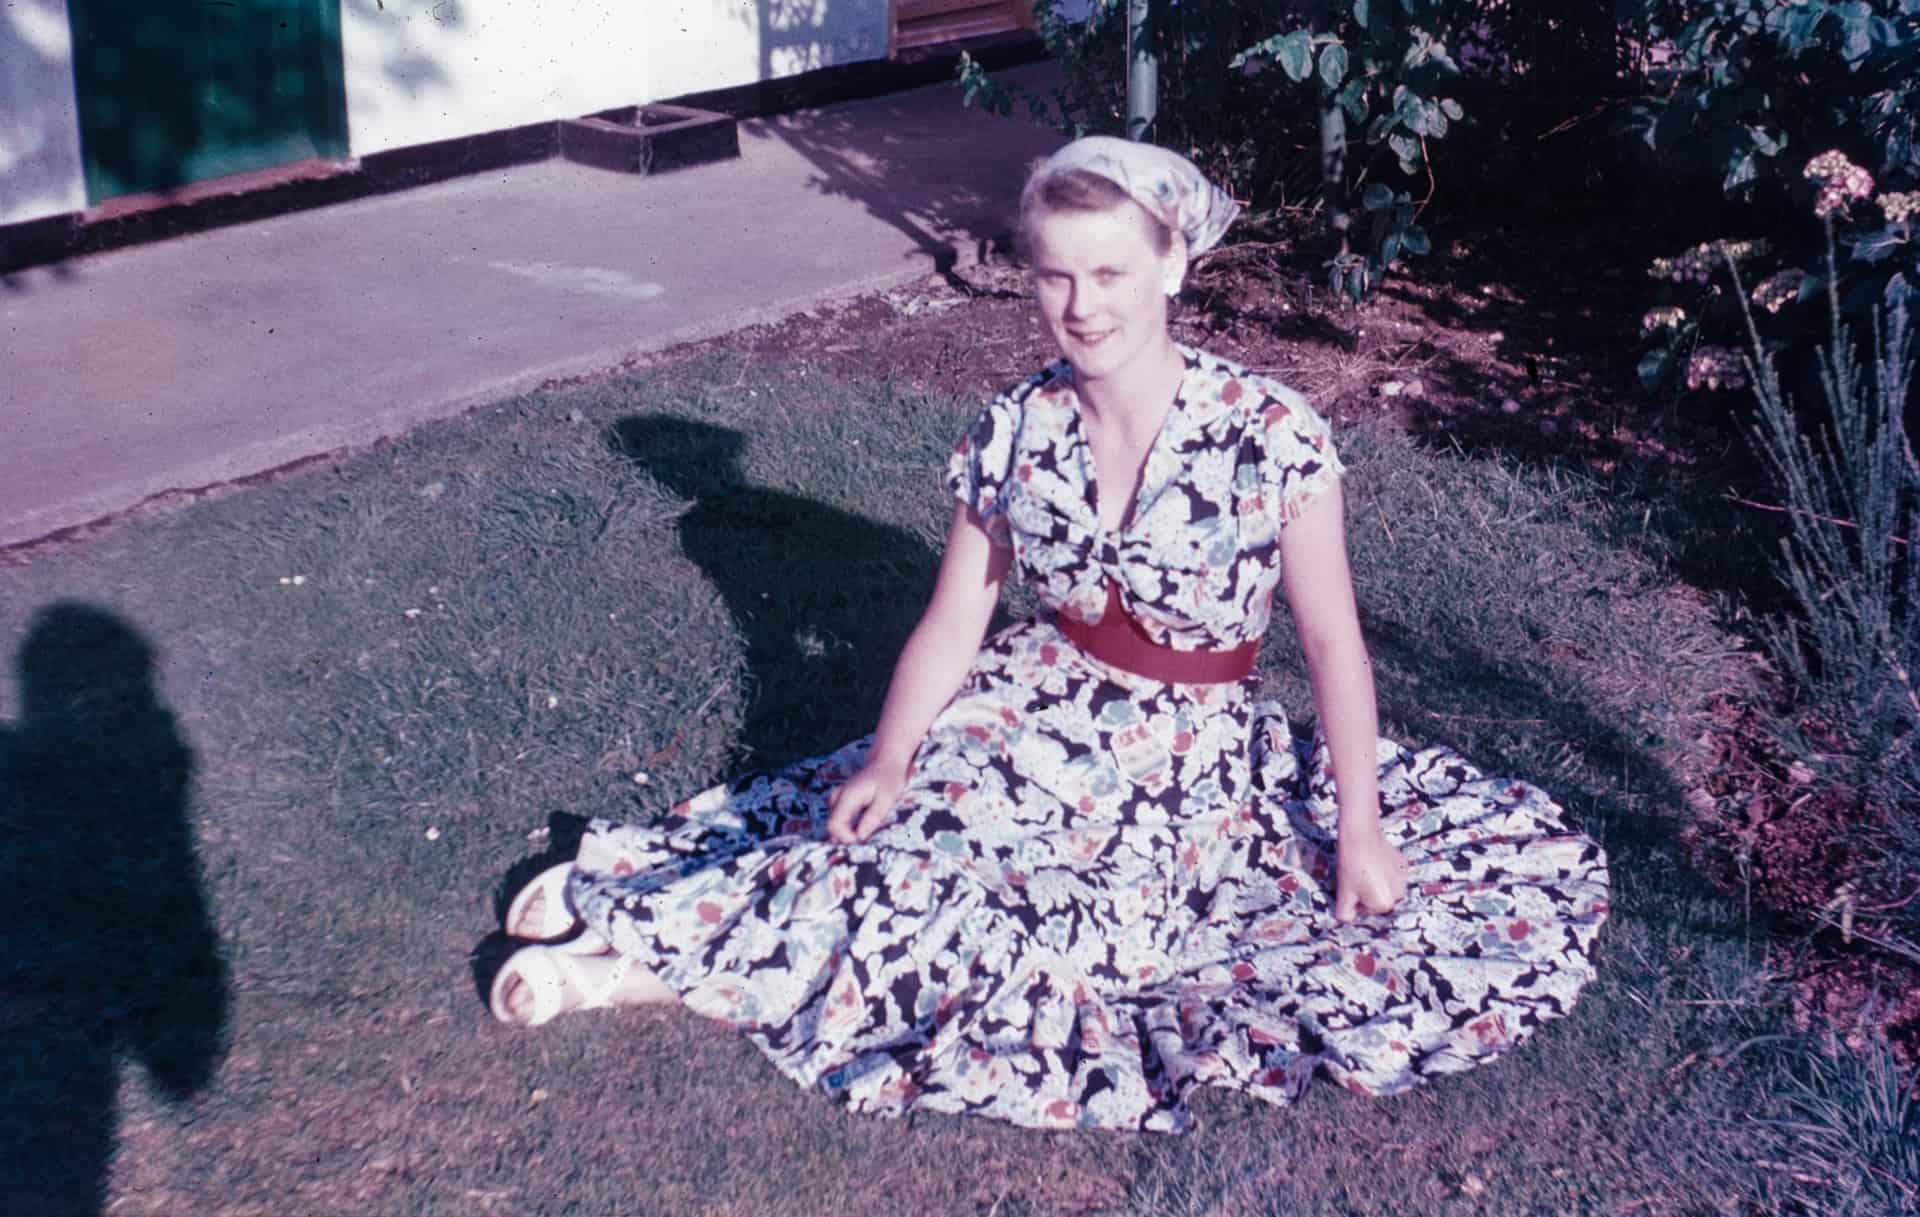 This is a lovely photo of my sister Jesse taken on slide film taken by my brother in the late 50s/ It was taken on holiday at Butlins, Phiiheli in Wales. She was with her boyfriend John Way, and my brother John and Rita